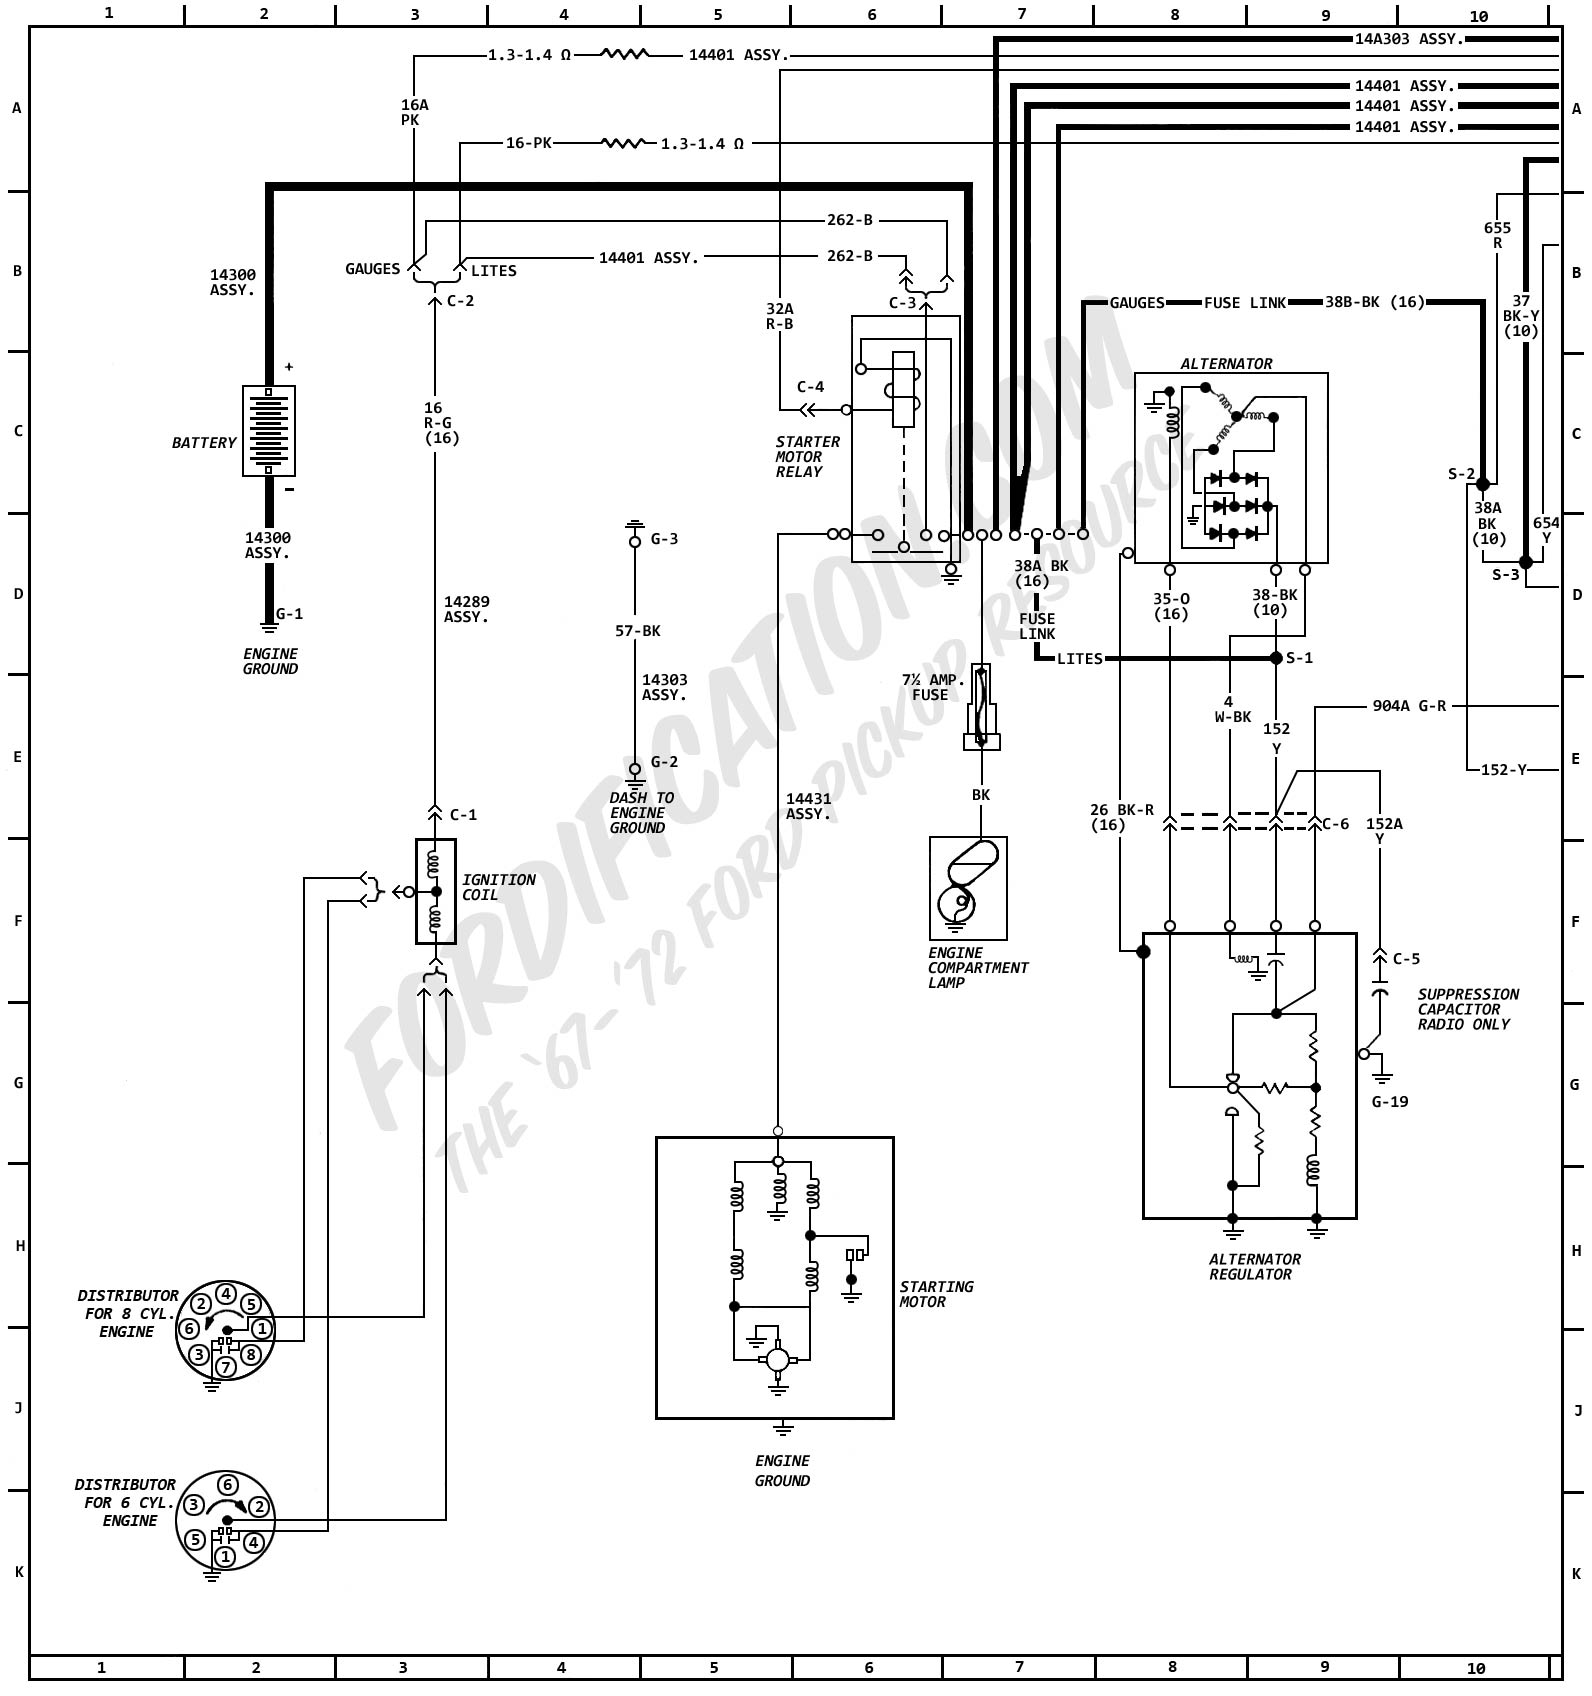 1972 Ford Ignition Diagram Content Resource Of Wiring Bronco Switch Truck Diagrams Fordification Com Rh 23 Liter Engine